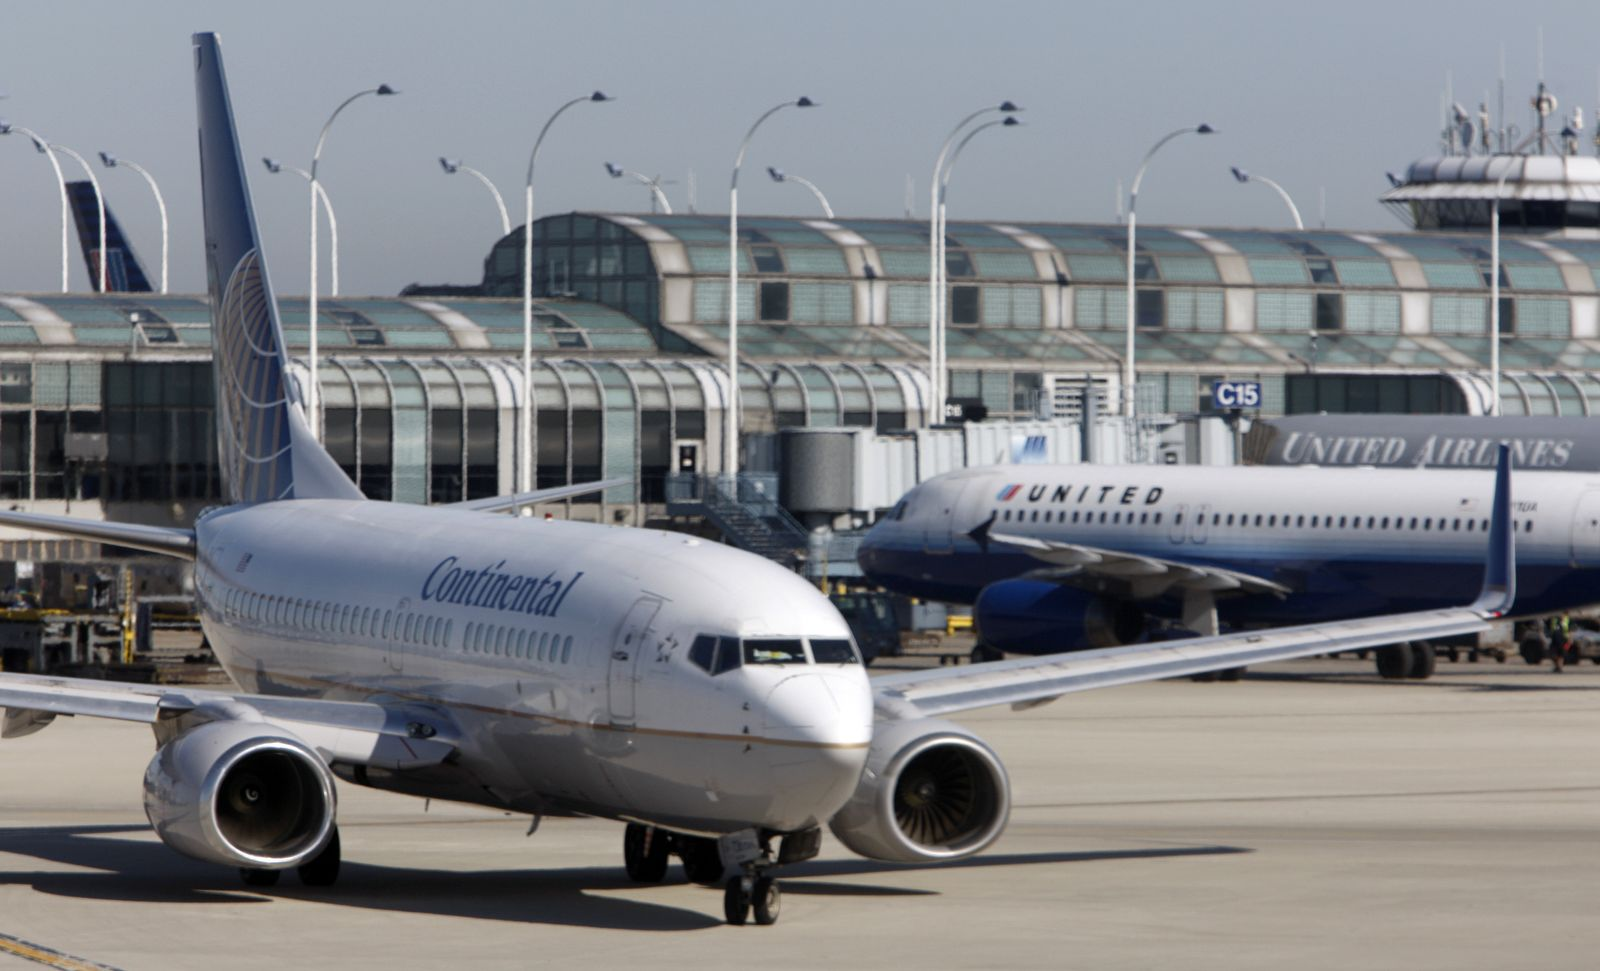 Continental Airlines/ United Airlines